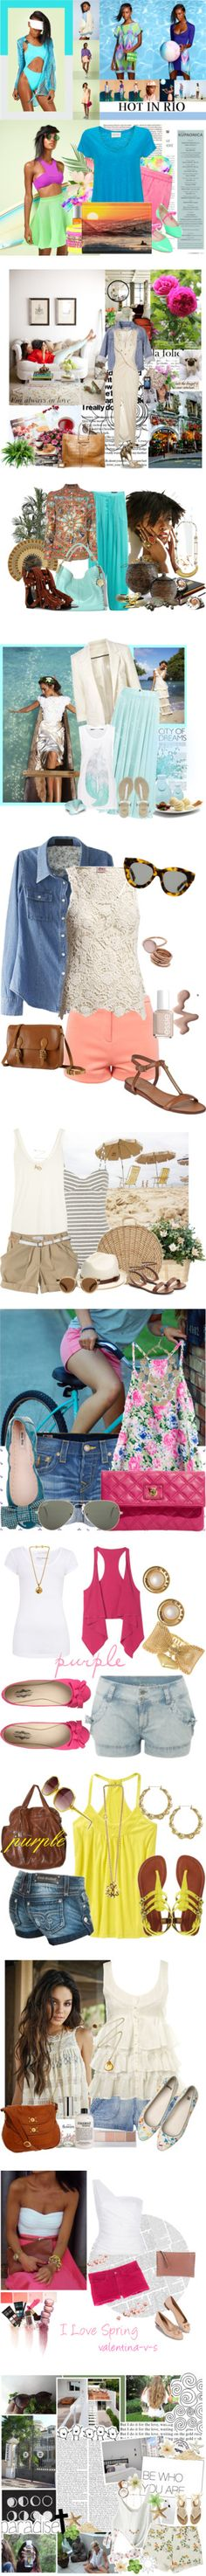 """""""_fash.inspir.summer_mix_01_"""" by sephira-1 ❤ liked on Polyvore"""